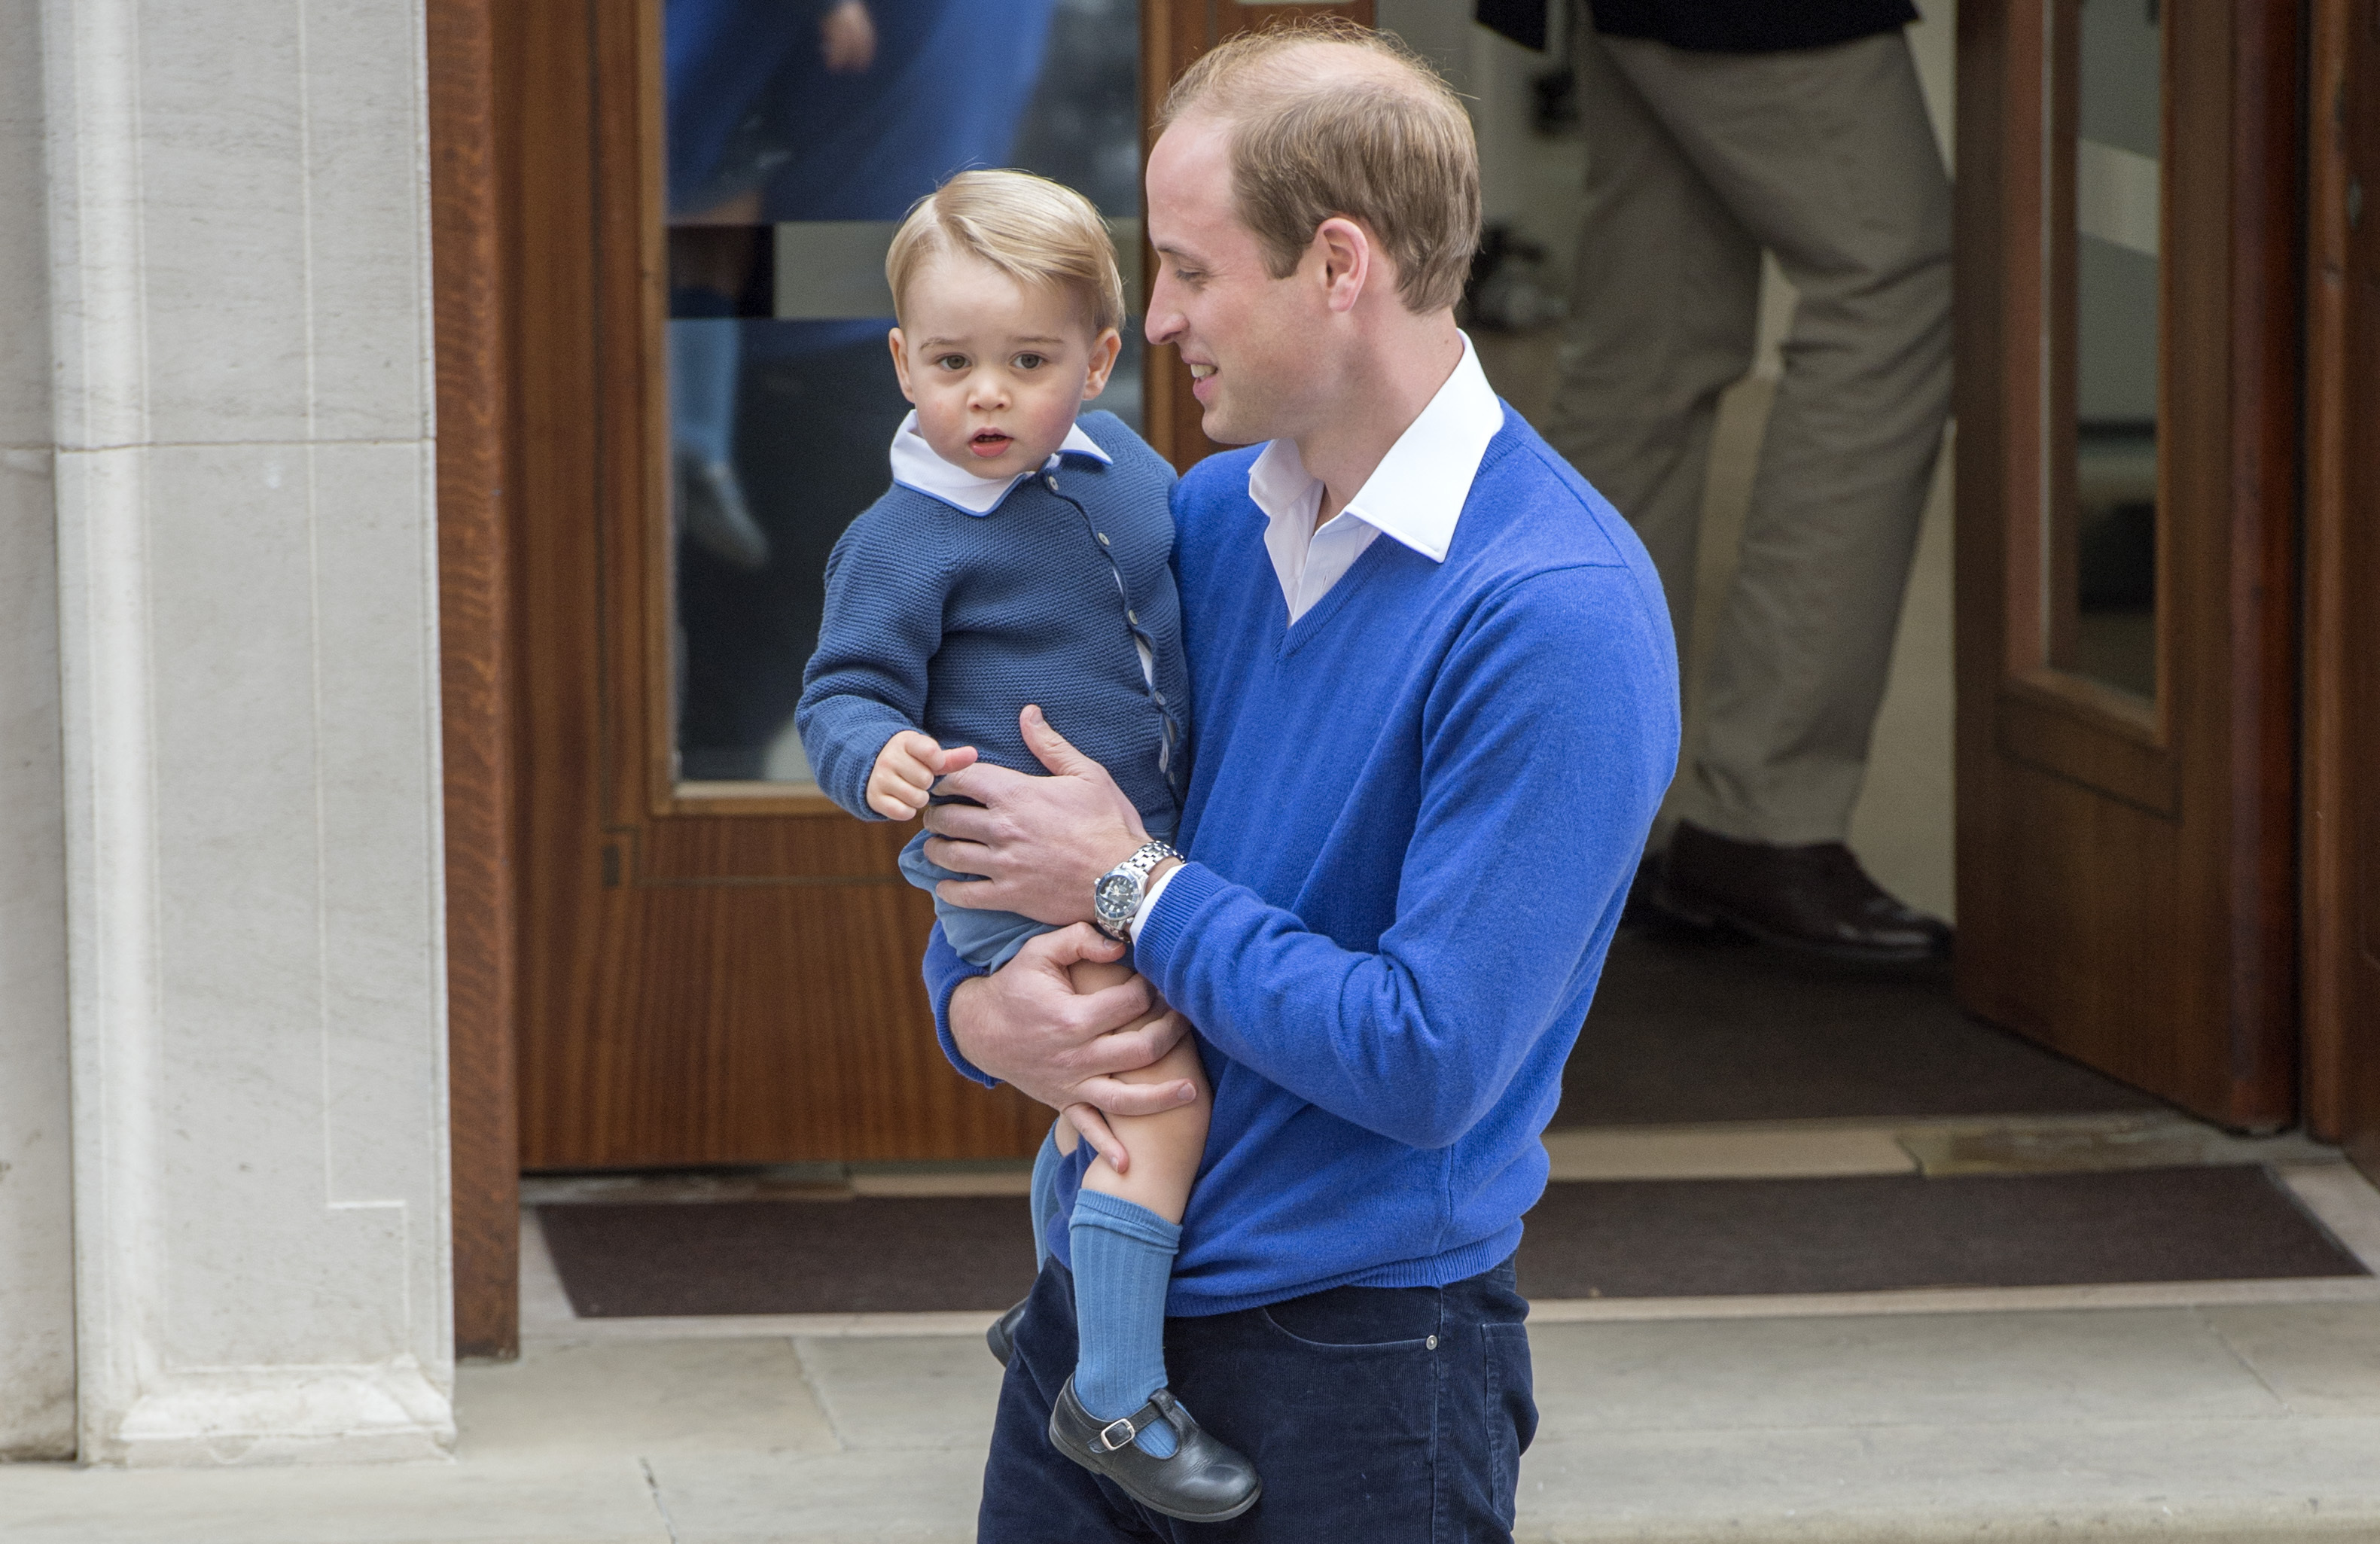 The Duke of Cambridge with his son Prince George as he arrives at the Lindo Wing of St Mary's Hospital in London, after the birth of his newborn daughter